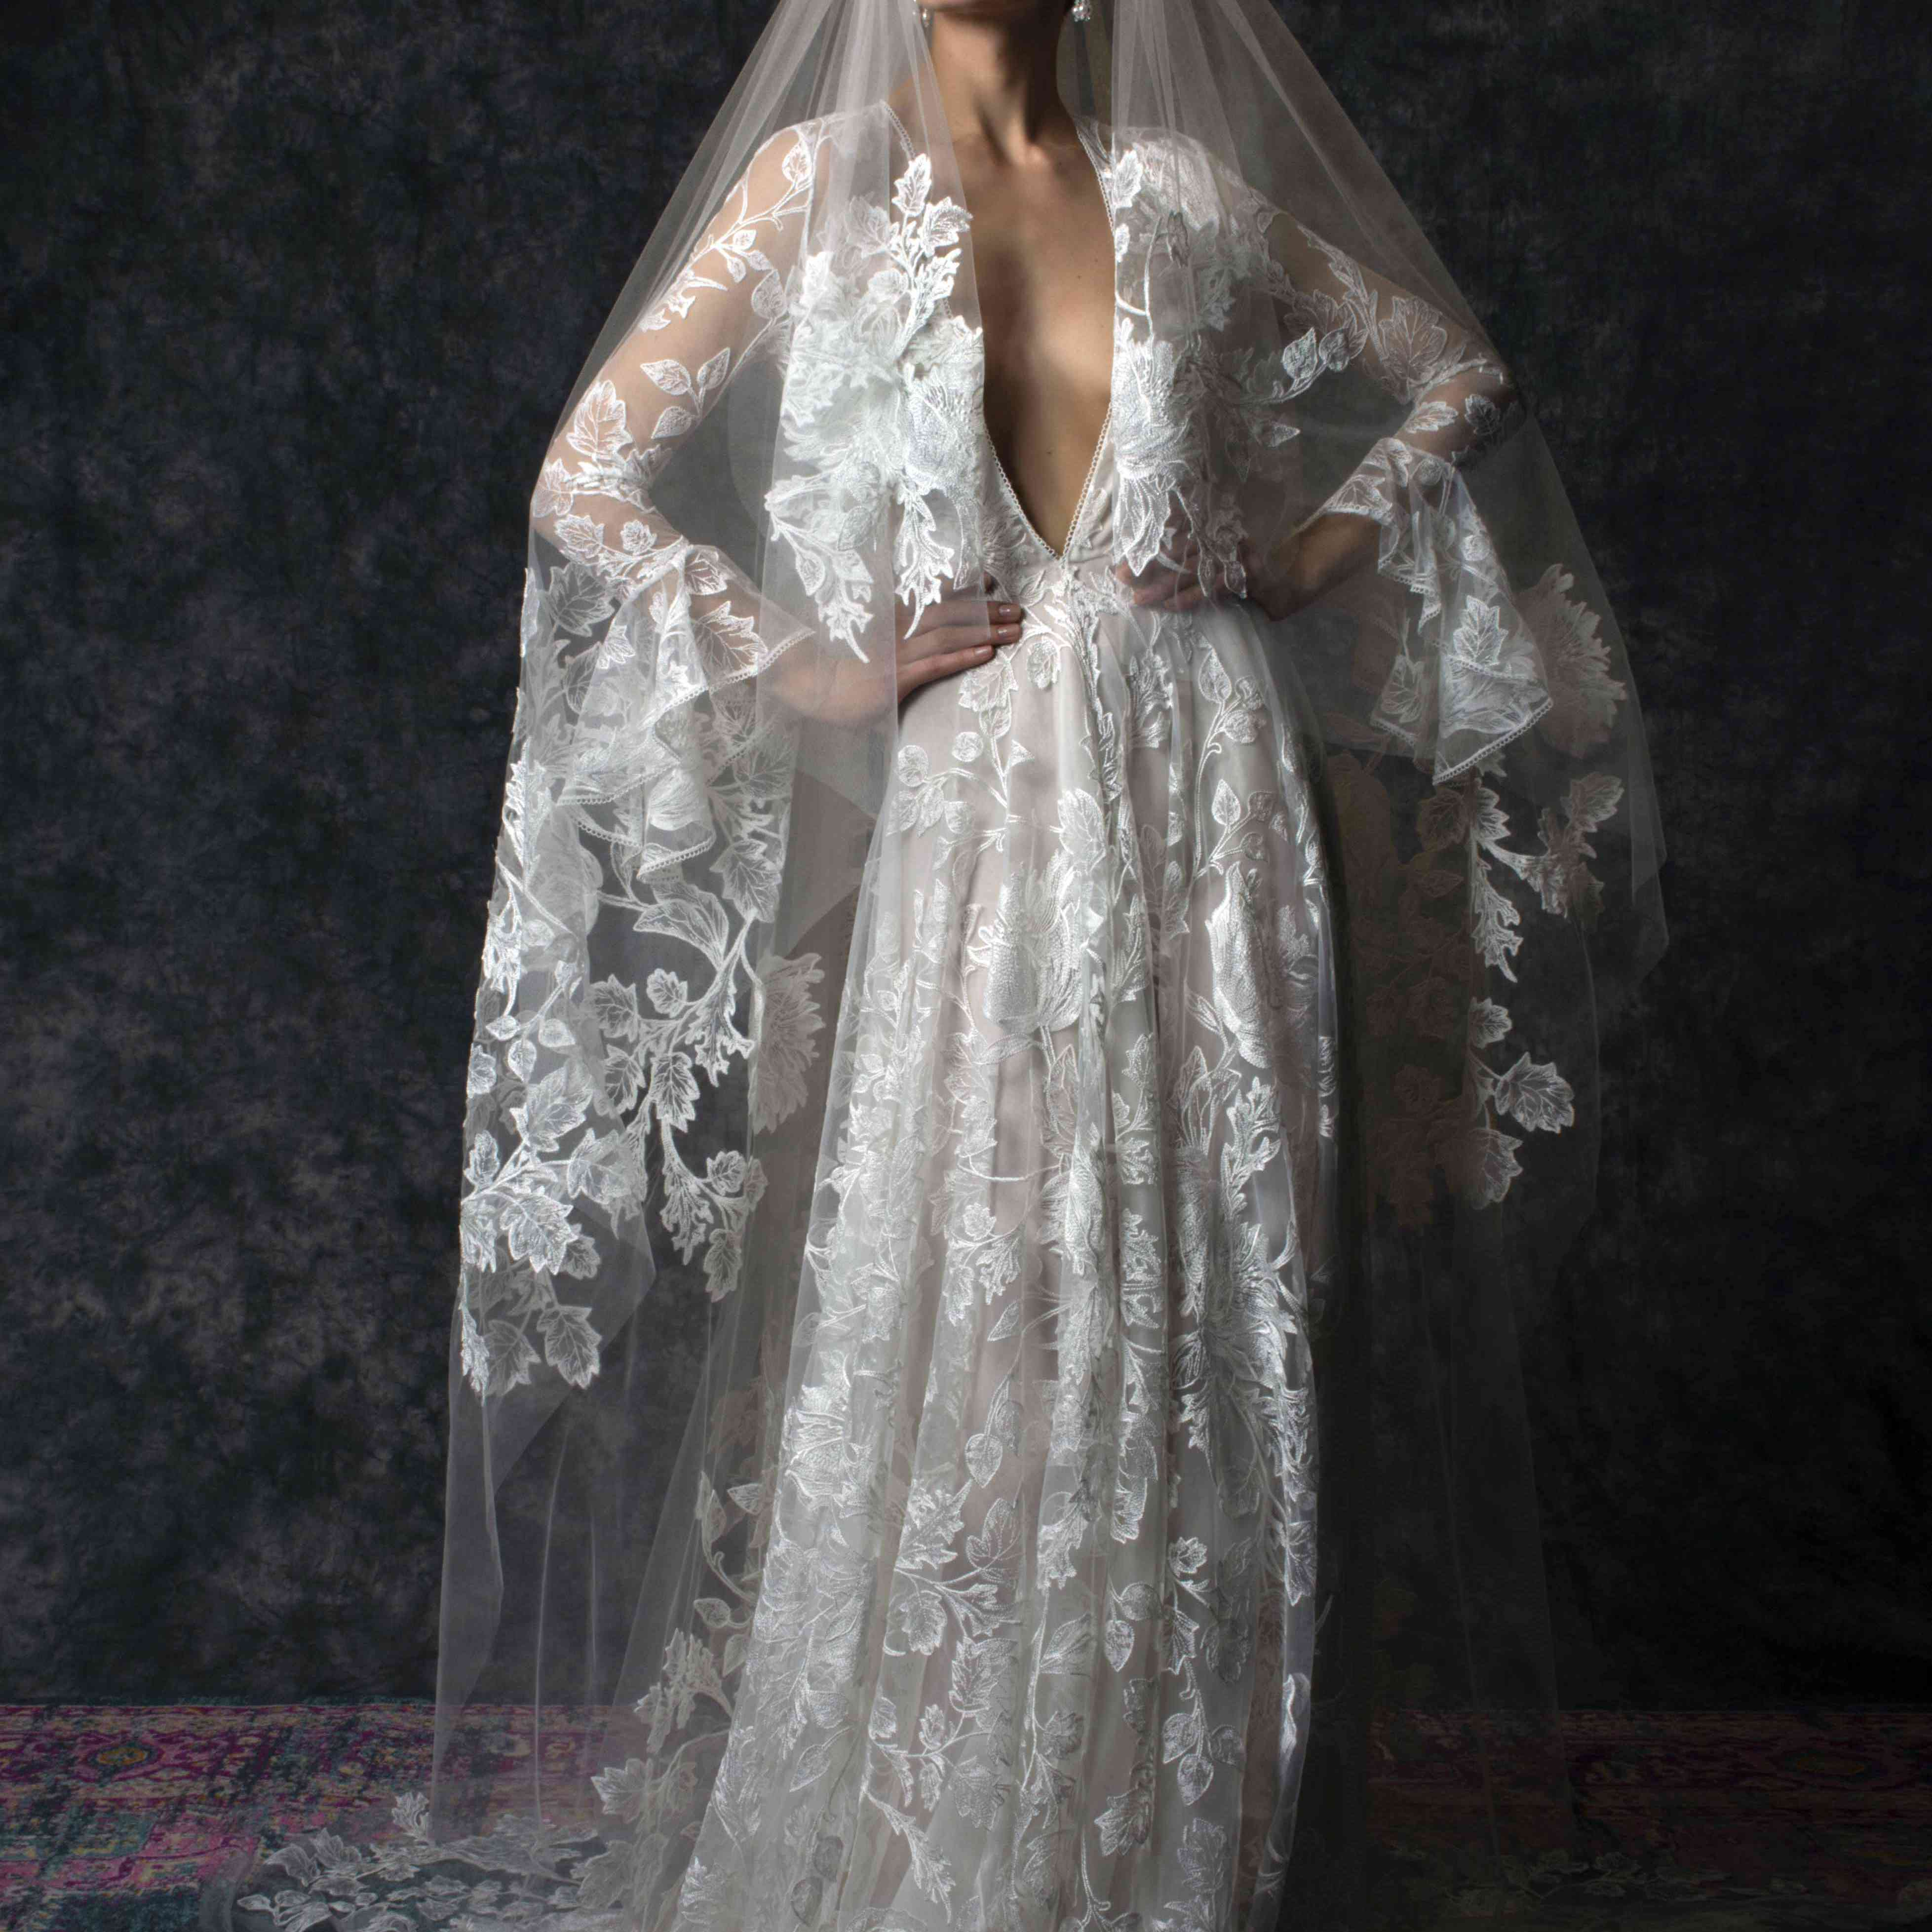 Model in long-sleeve lace gown with plunging neckline